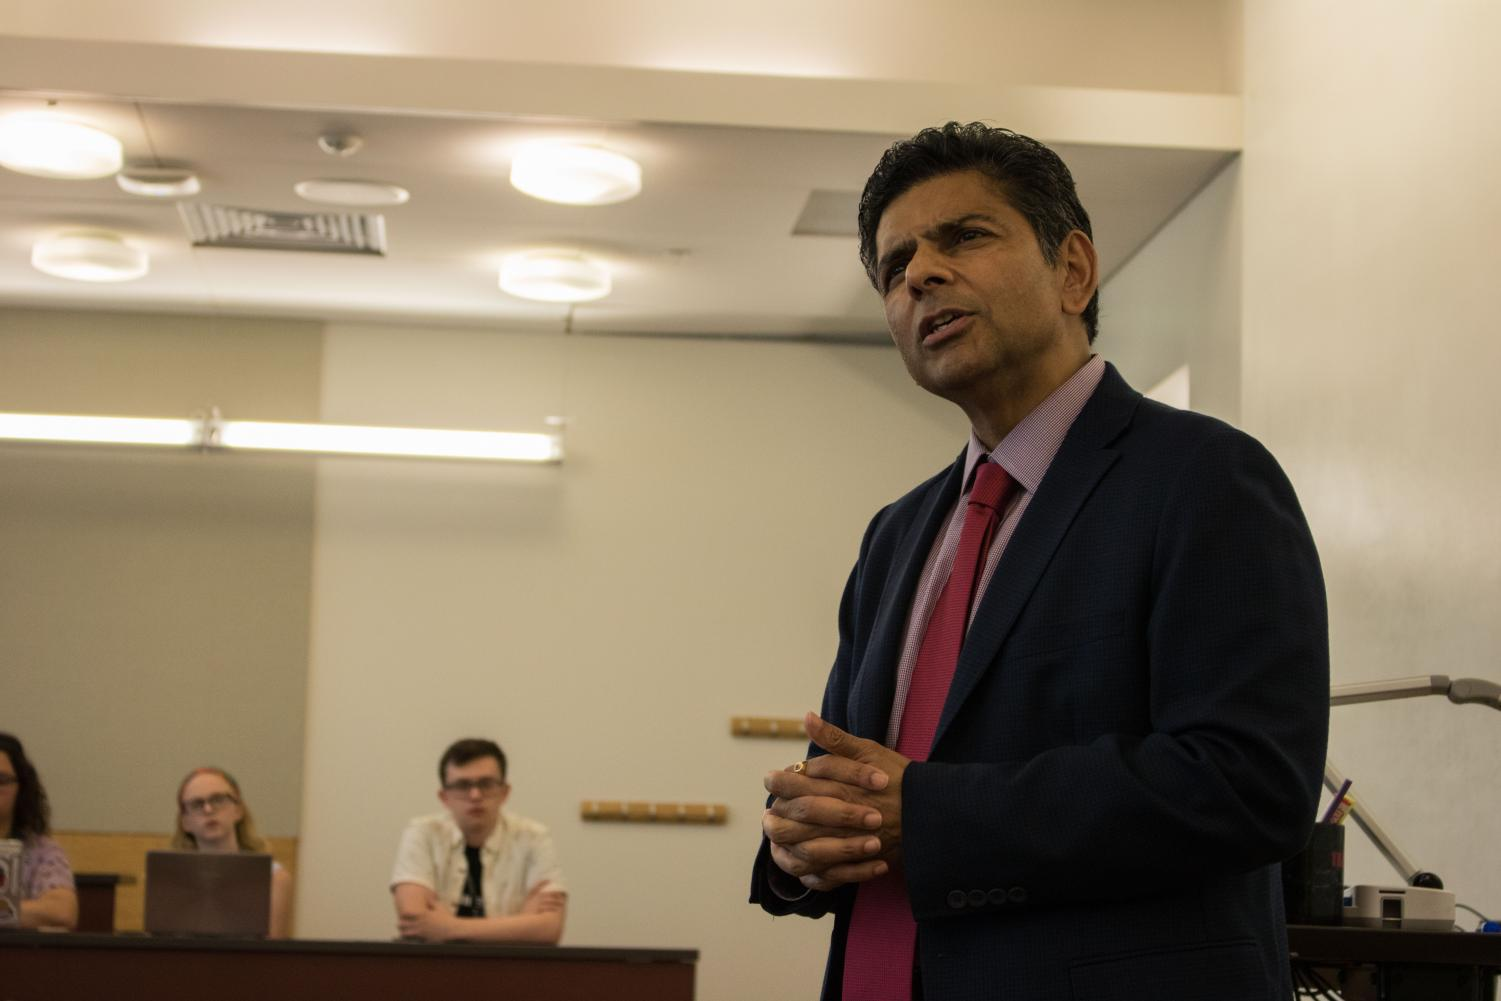 Vaidya+focused+on+campus+growth%2C+financial+challenges+and+his+career+in+academia+during+the+mock+press+conference.